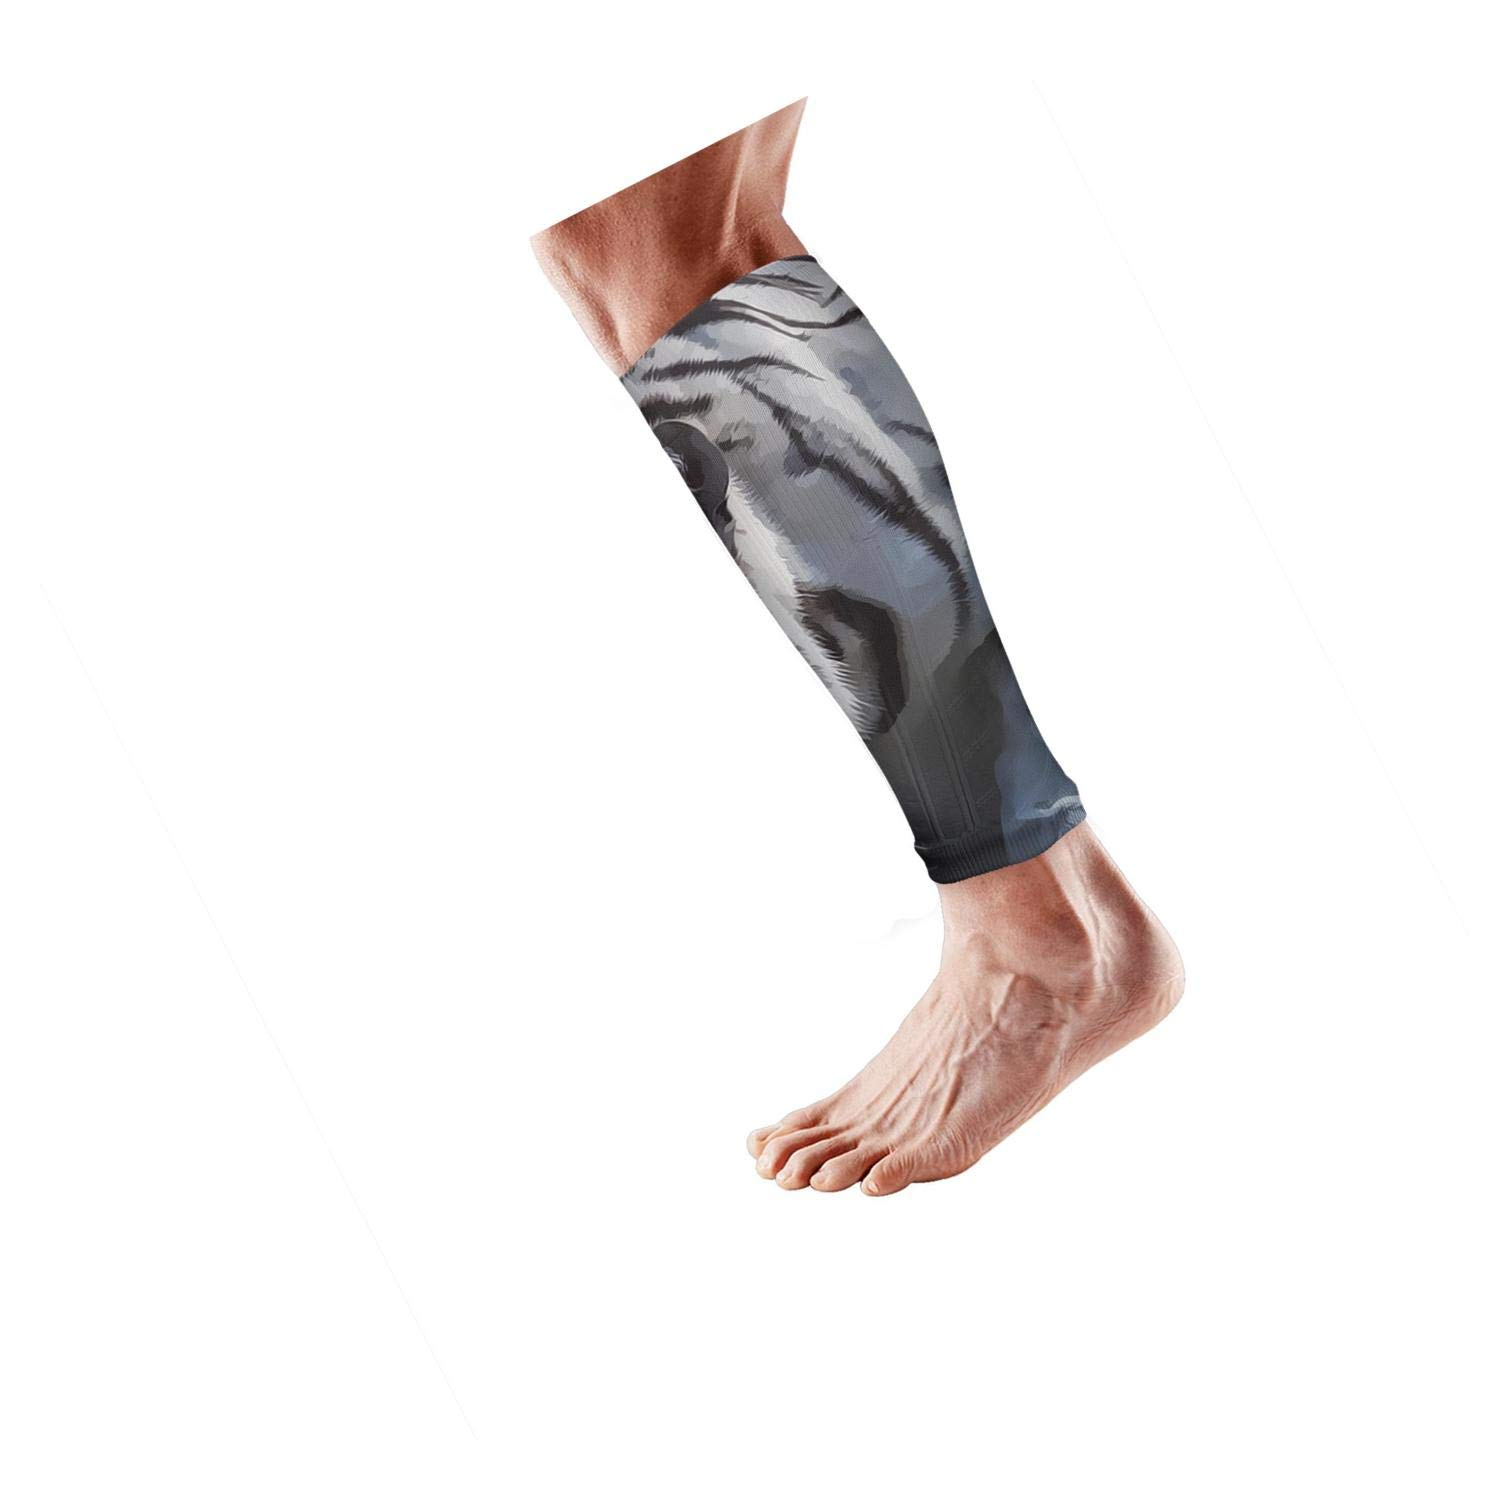 Smilelolly Arts white tiger Calf Compression Sleeves Helps Shin Splint Leg Sleeves for Men Women